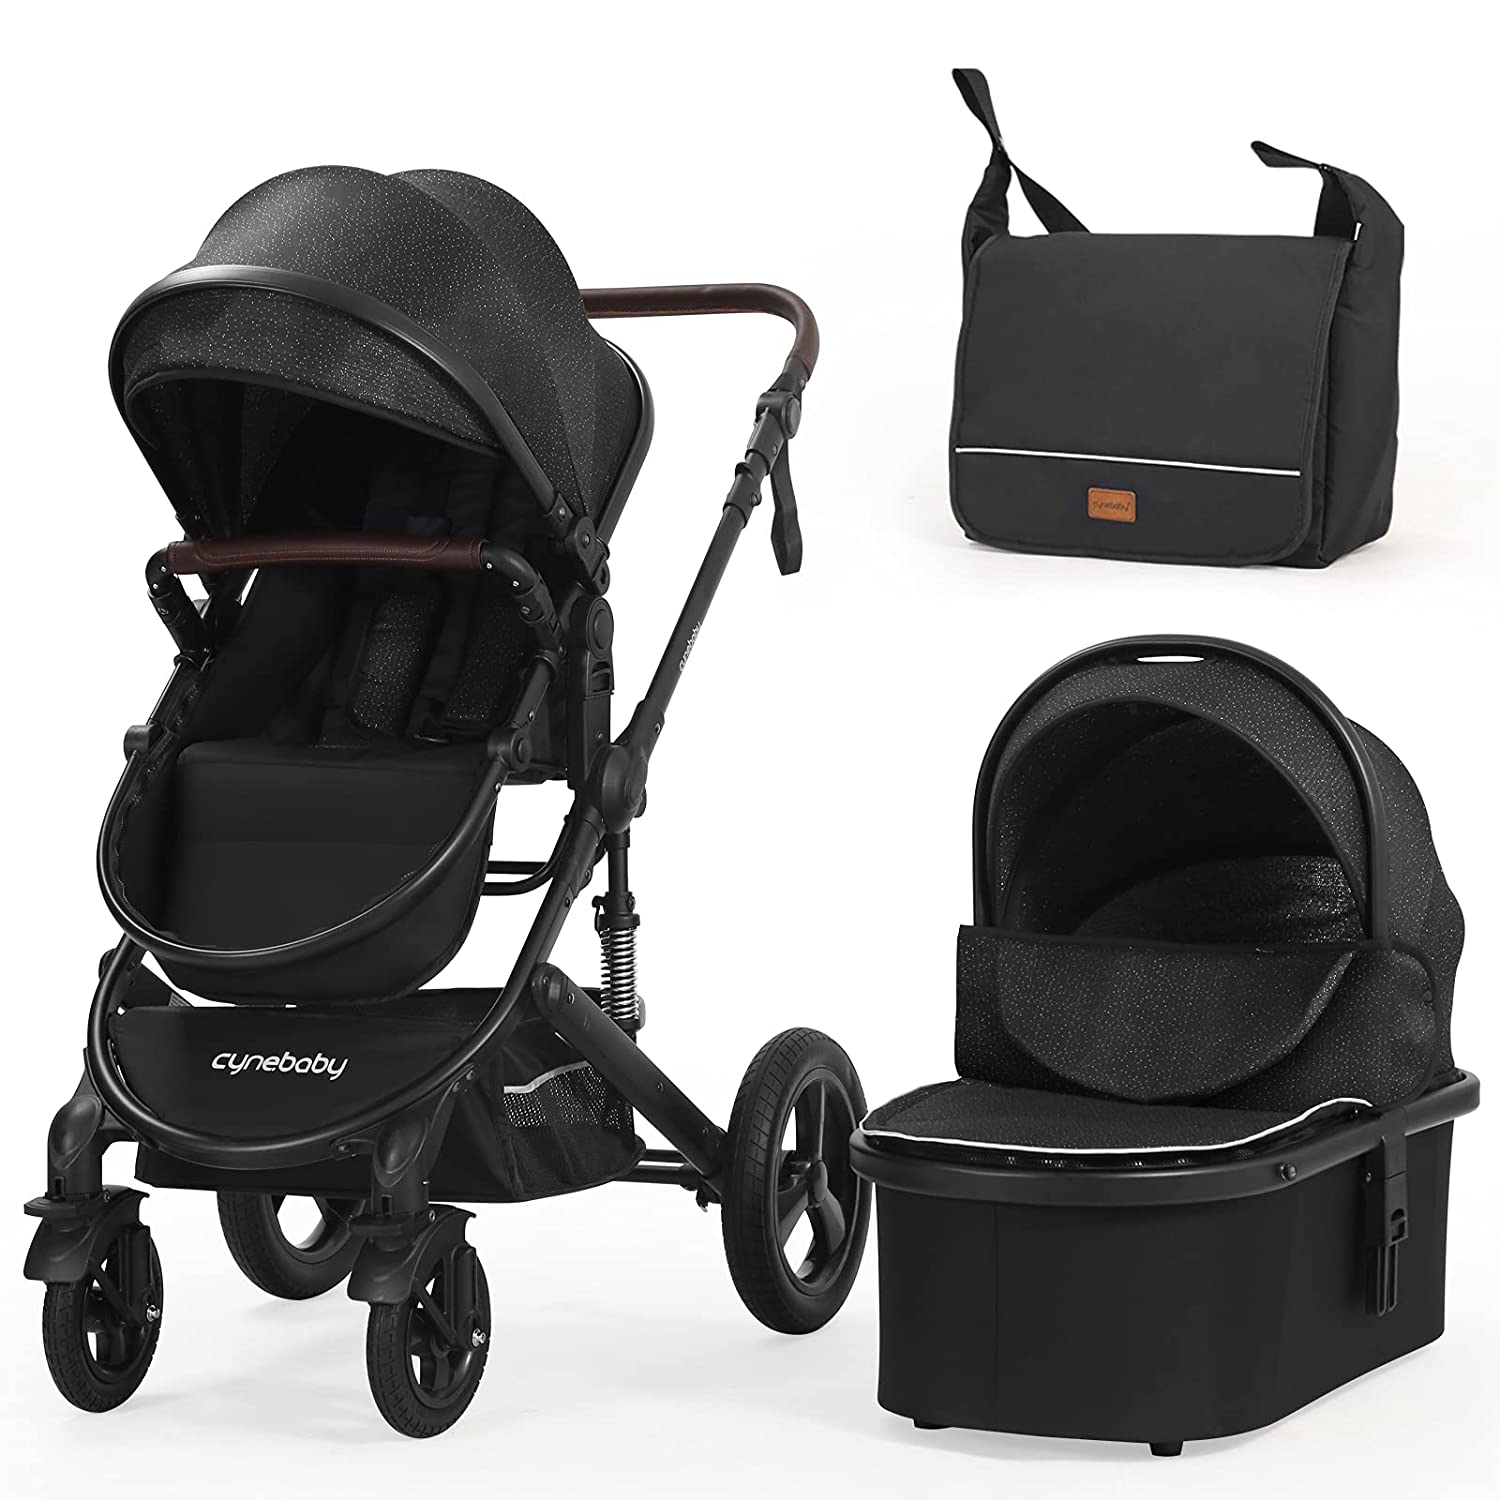 Newborn Infant Toddler Baby Stroller - Cynebaby 2 in 1 High Landscape Convertible Reversible Anti-Shock Bassinet Carriage Pram Stroller Add Cup Holder, Footmuff and Diaper Bag (Starry Night)